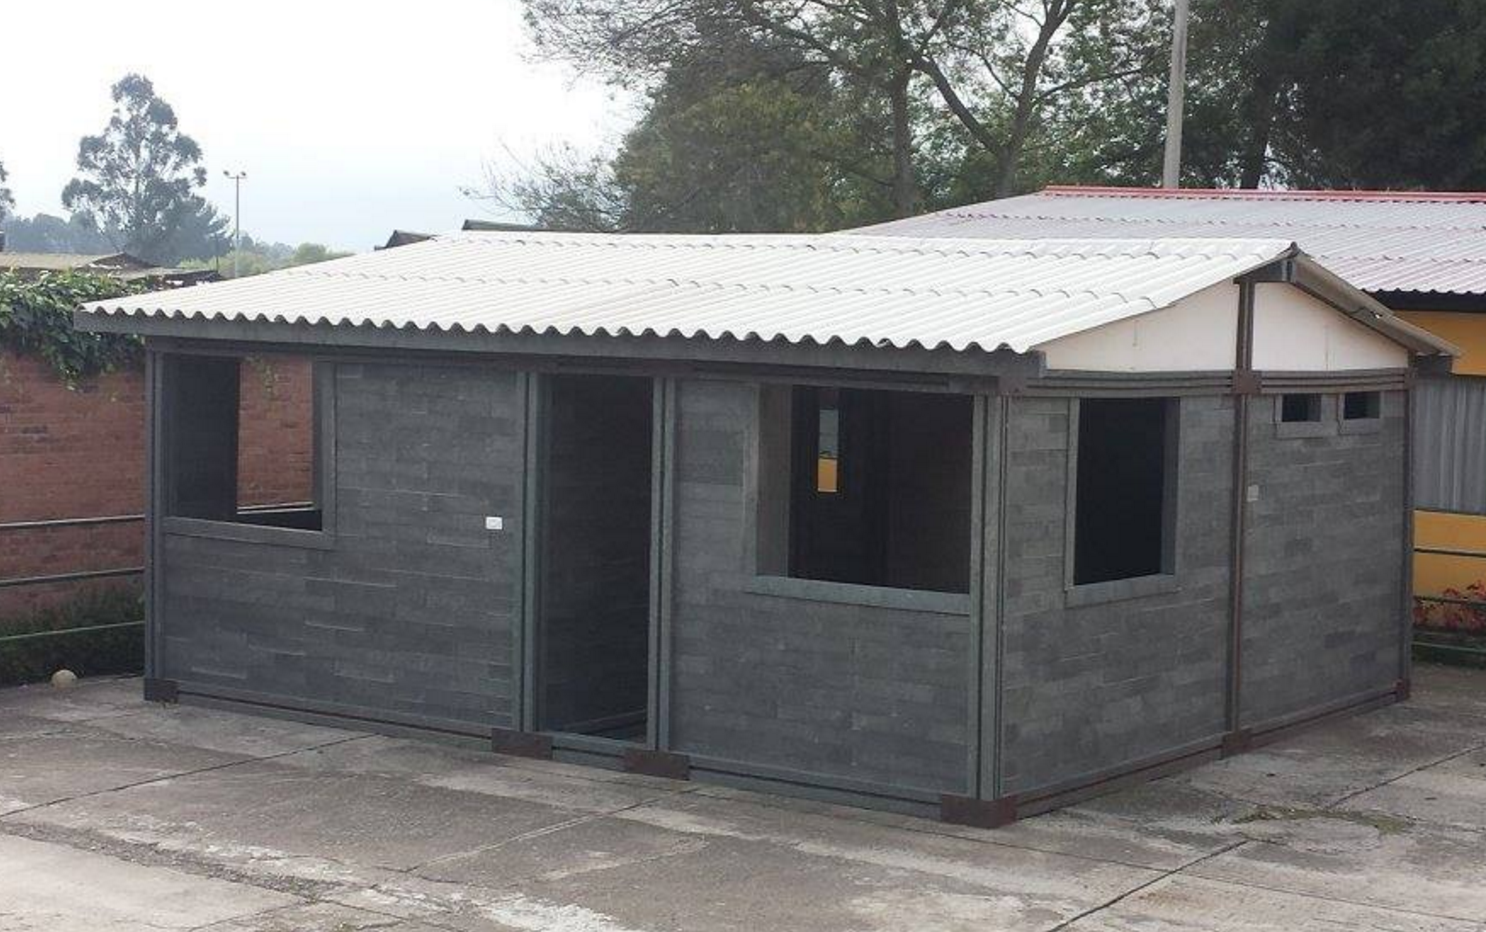 Lego houses made from waste plastic house the homeless for Waste material used in home